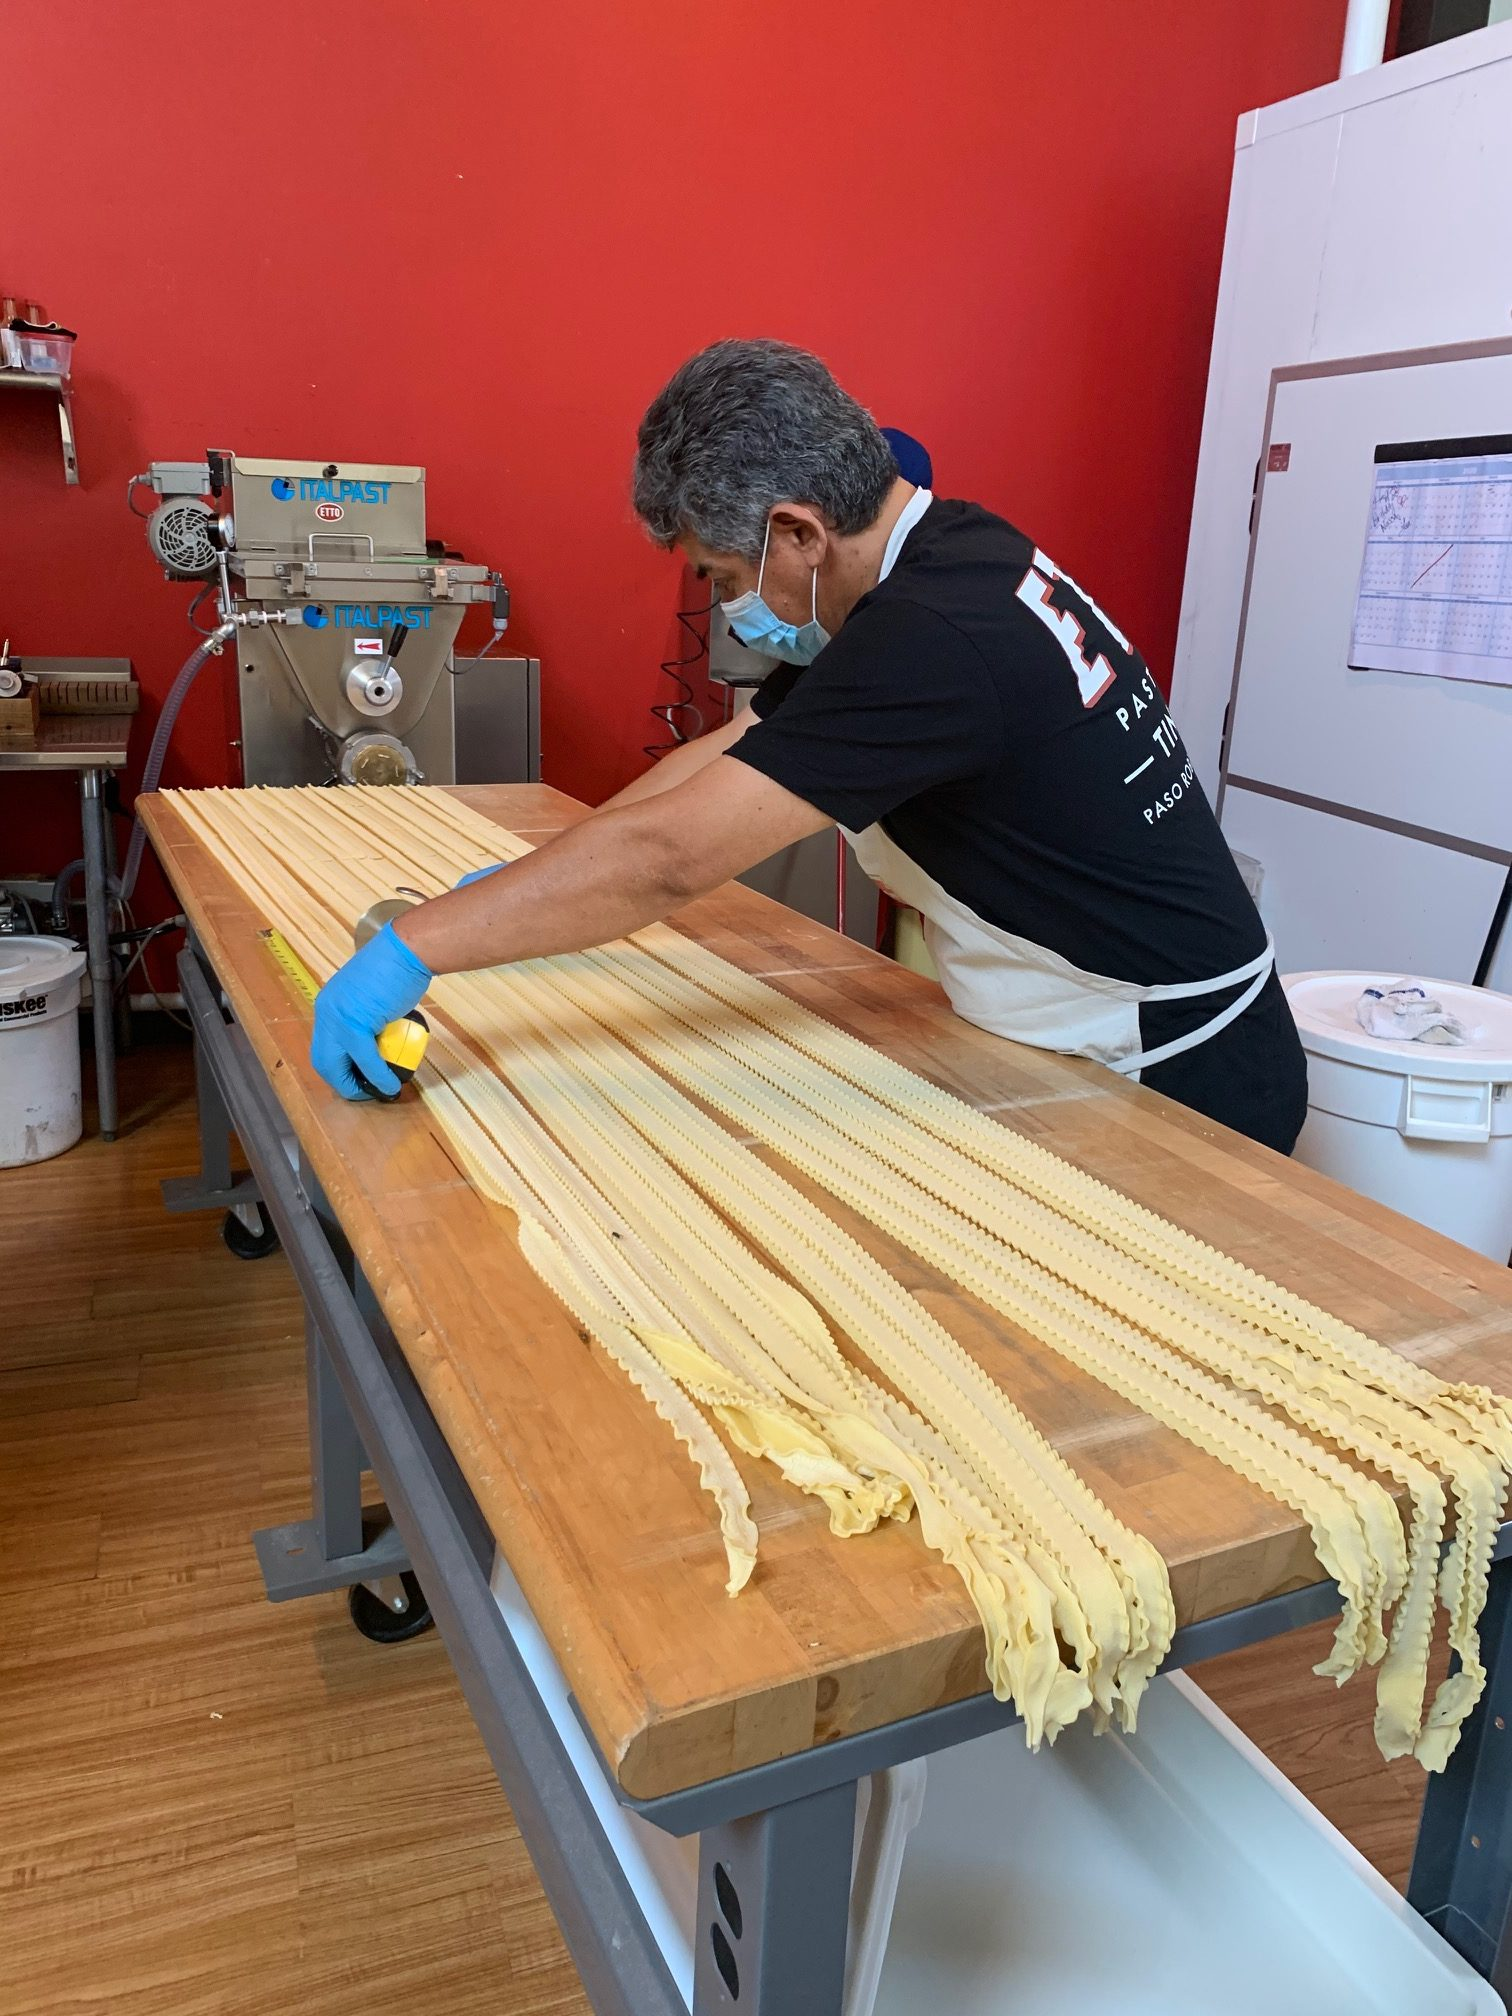 Pasta making in Paso Robles